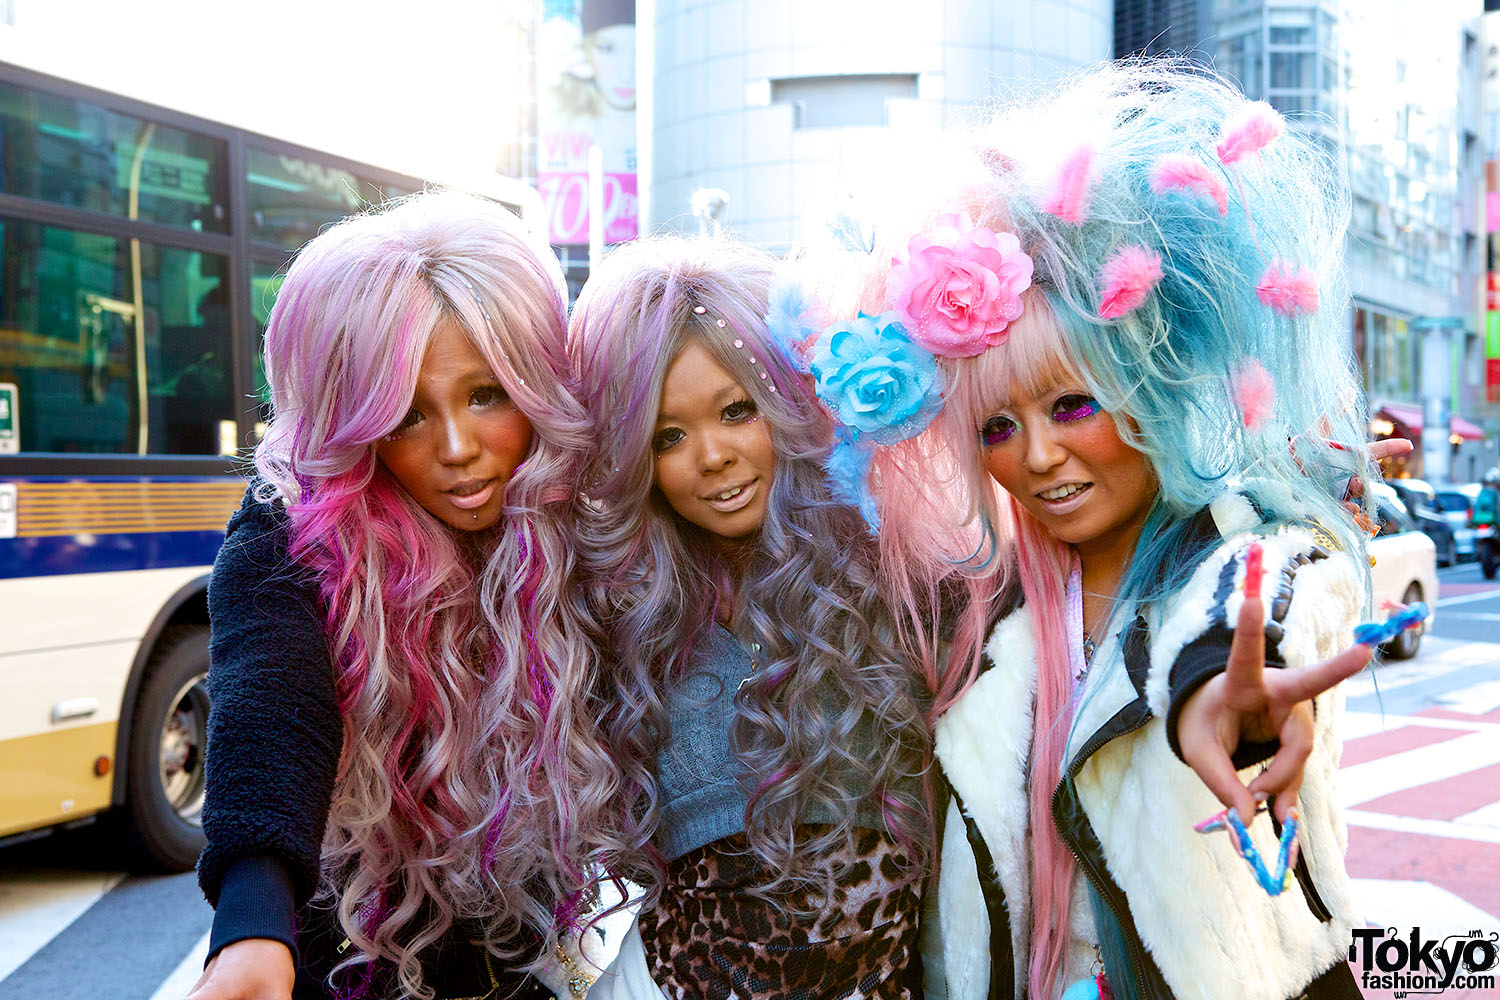 Japanese Kuro Gyaru Black Diamond 13 Tokyo Fashion News